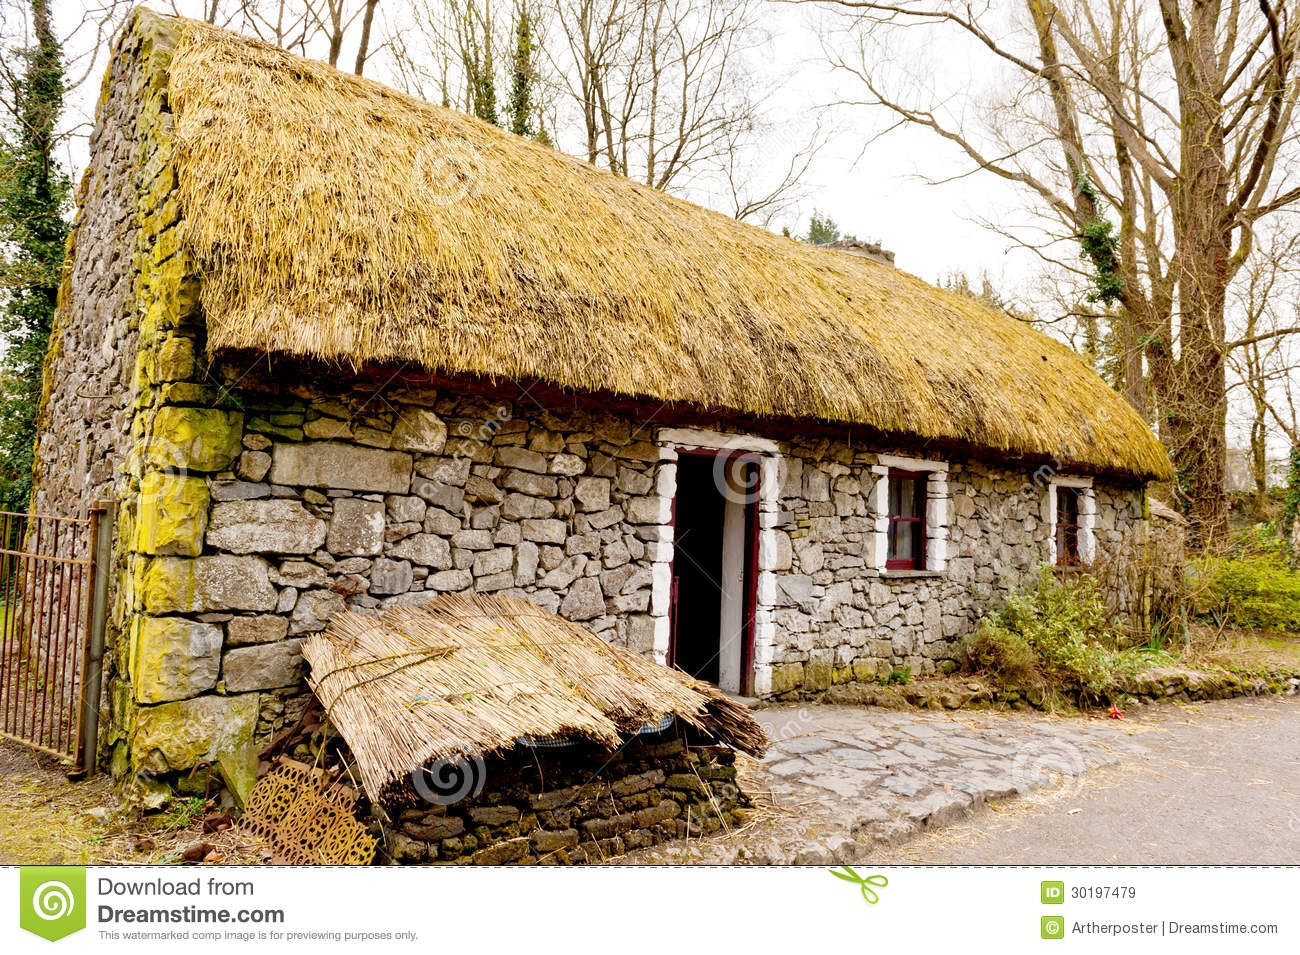 Vieux cottage irlandais images libres de droits image 30197479 - Serene traditional cottage in natural theme ...